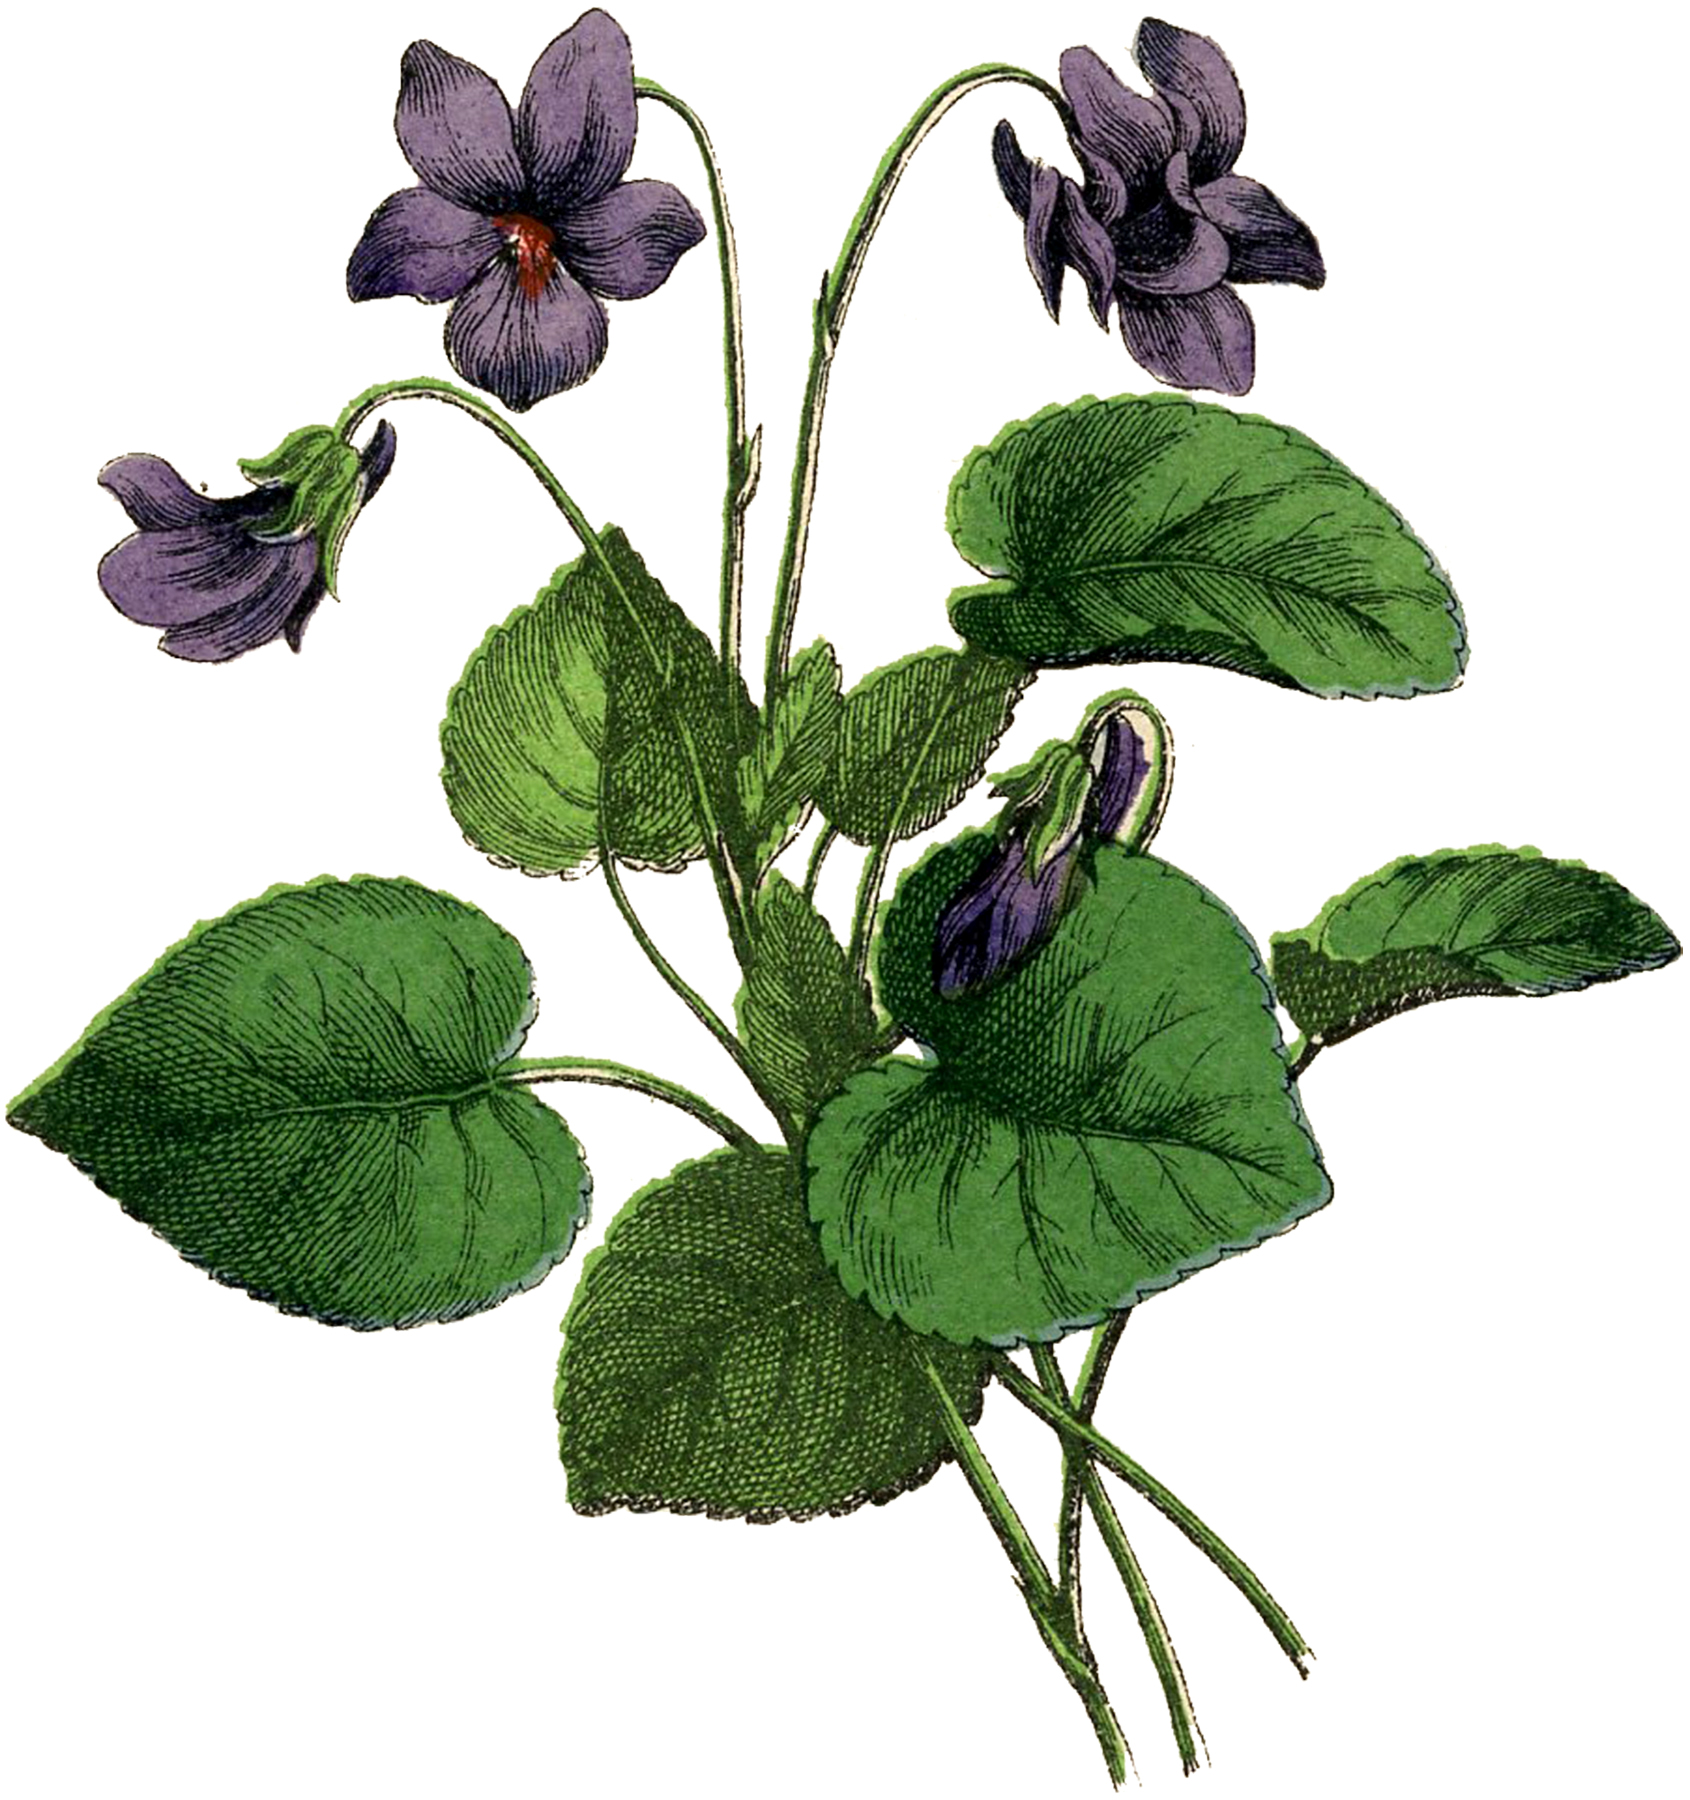 Gorgeous Vintage Violets Image! - The Graphics Fairy